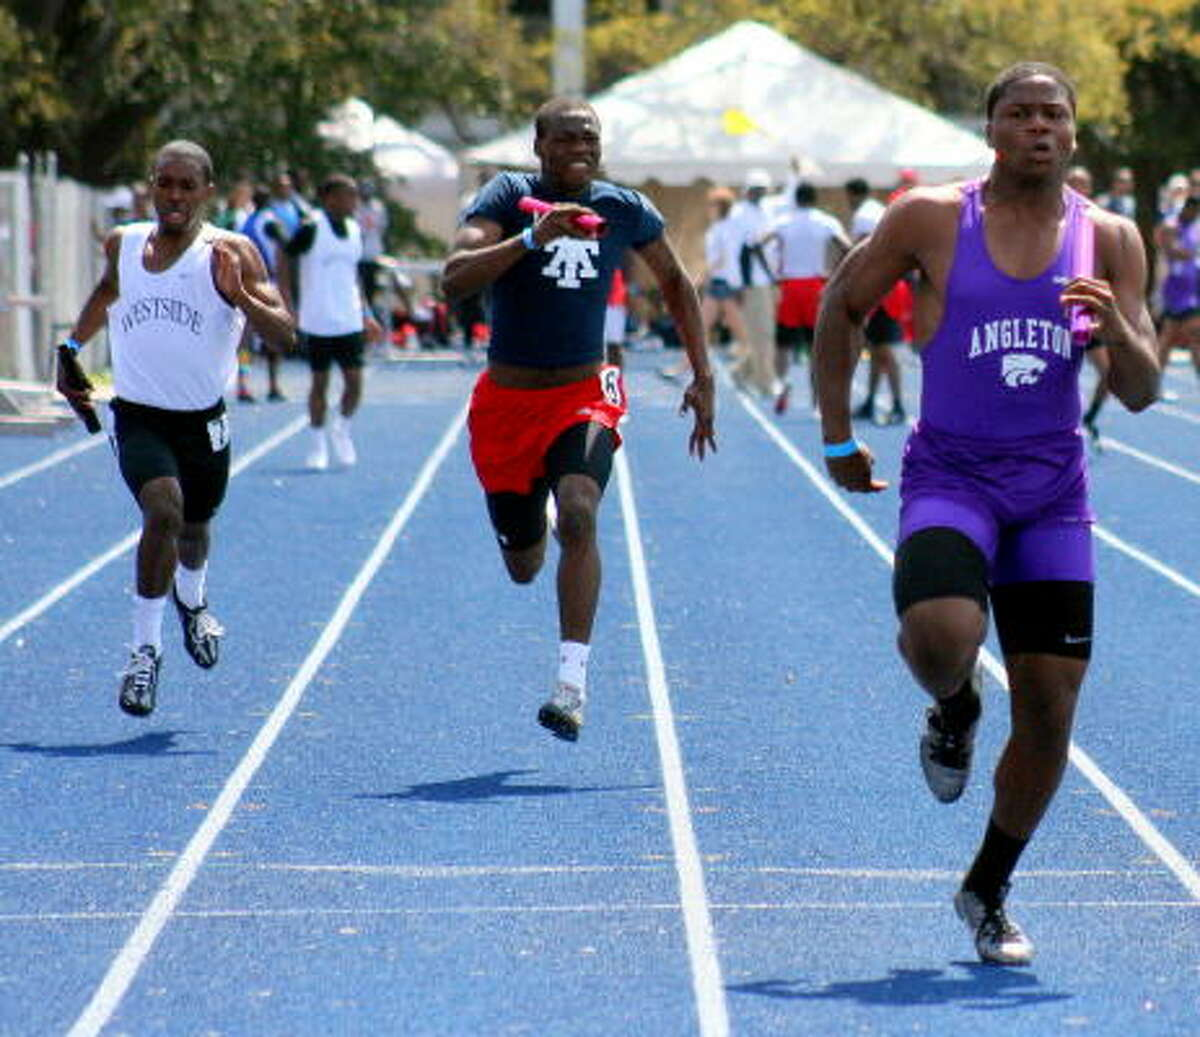 Angleton's Terrence Franks runs ahead of the pack.